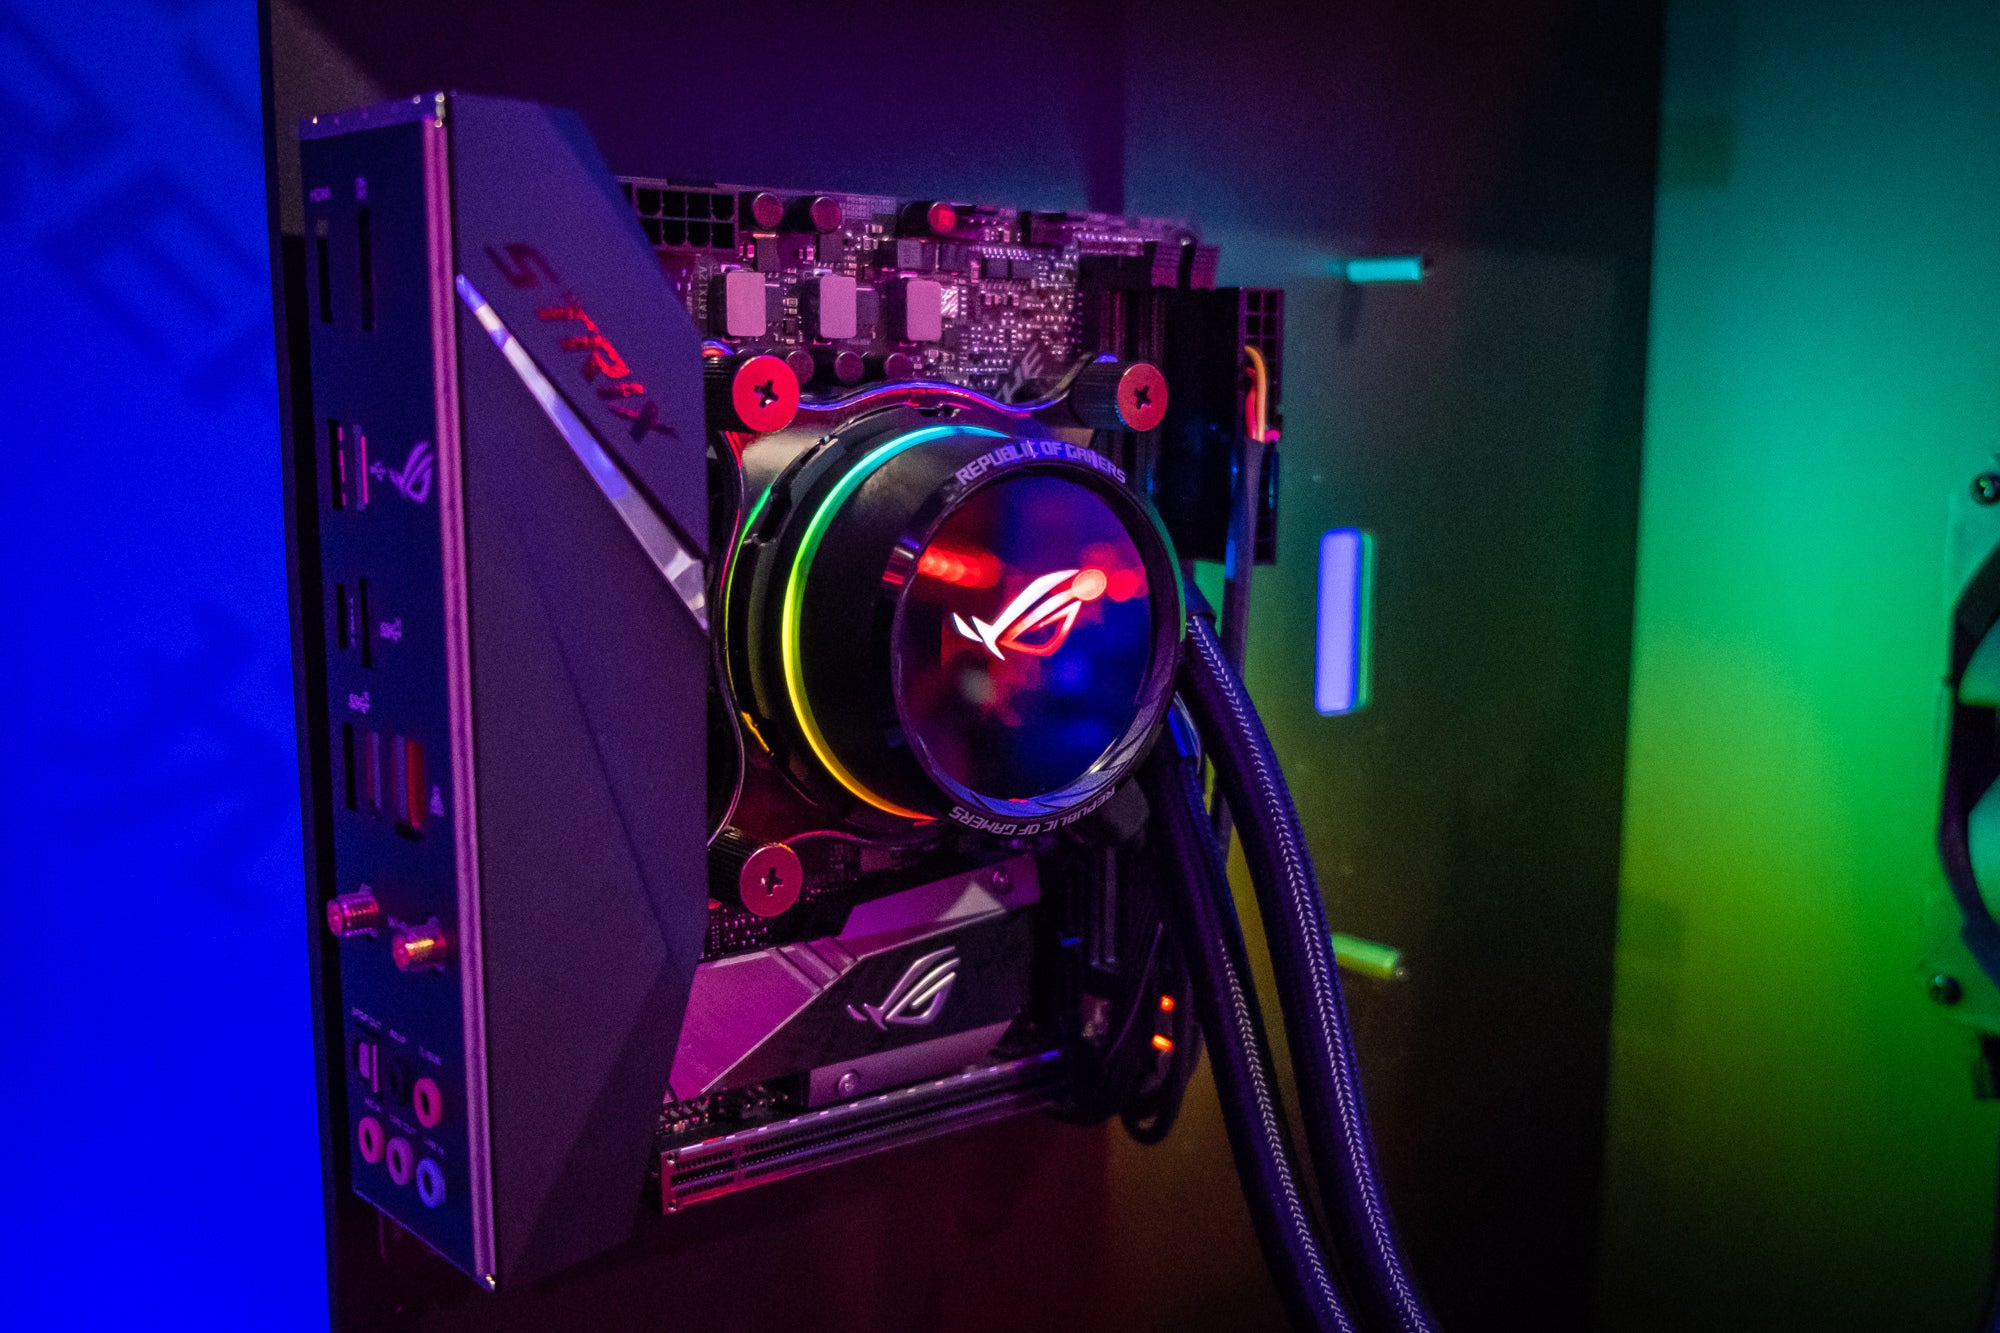 Asus integrates OLED displays into ROG power supplies and